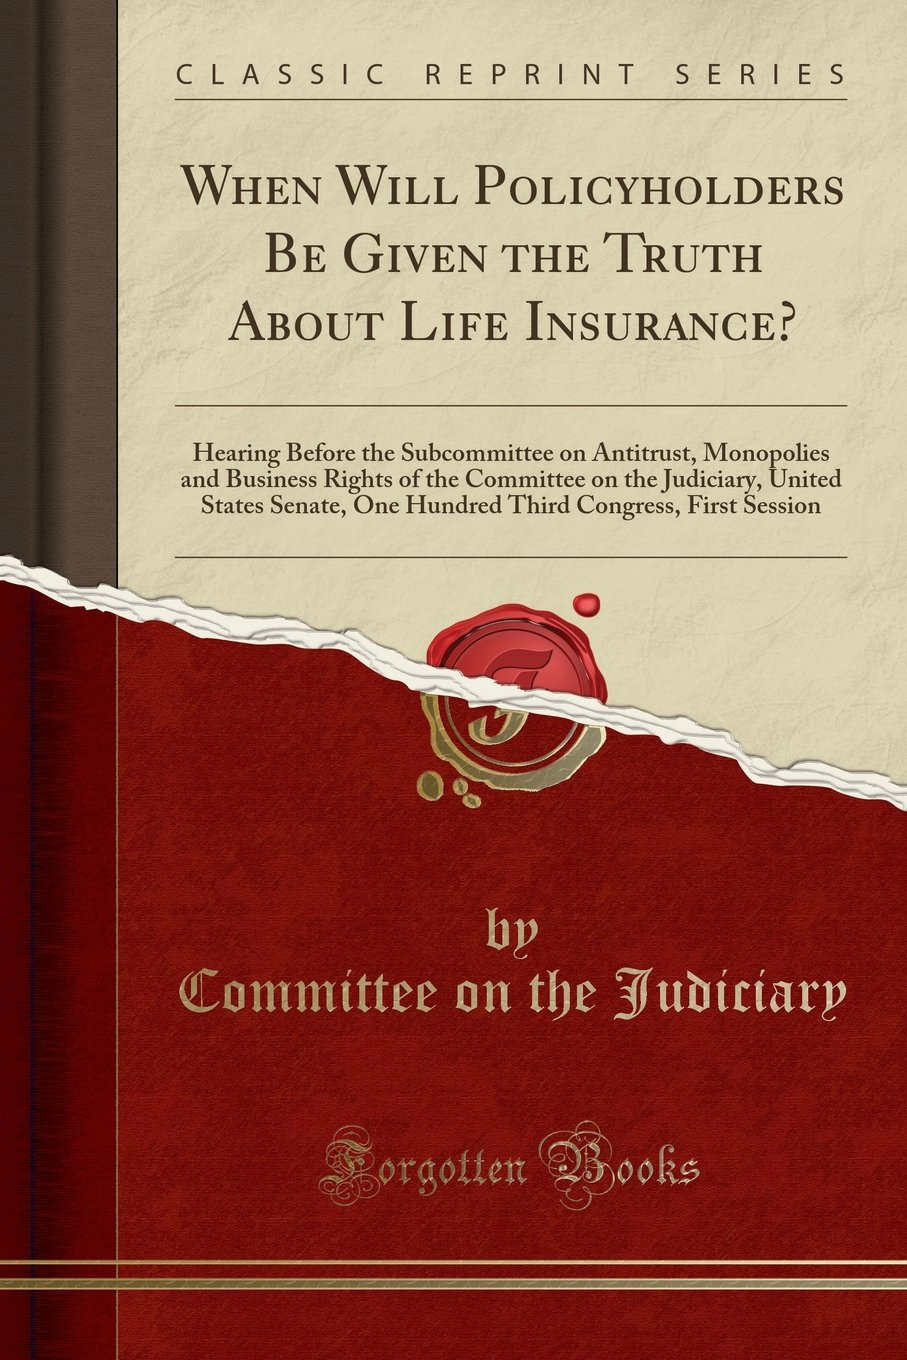 When Will Policyholders Be Given the Truth About Life Insurance?: Hearing Before the Subcommittee on Antitrust, Monopolies and Business Rights of the One Hundred Third Congress, First Session pdf